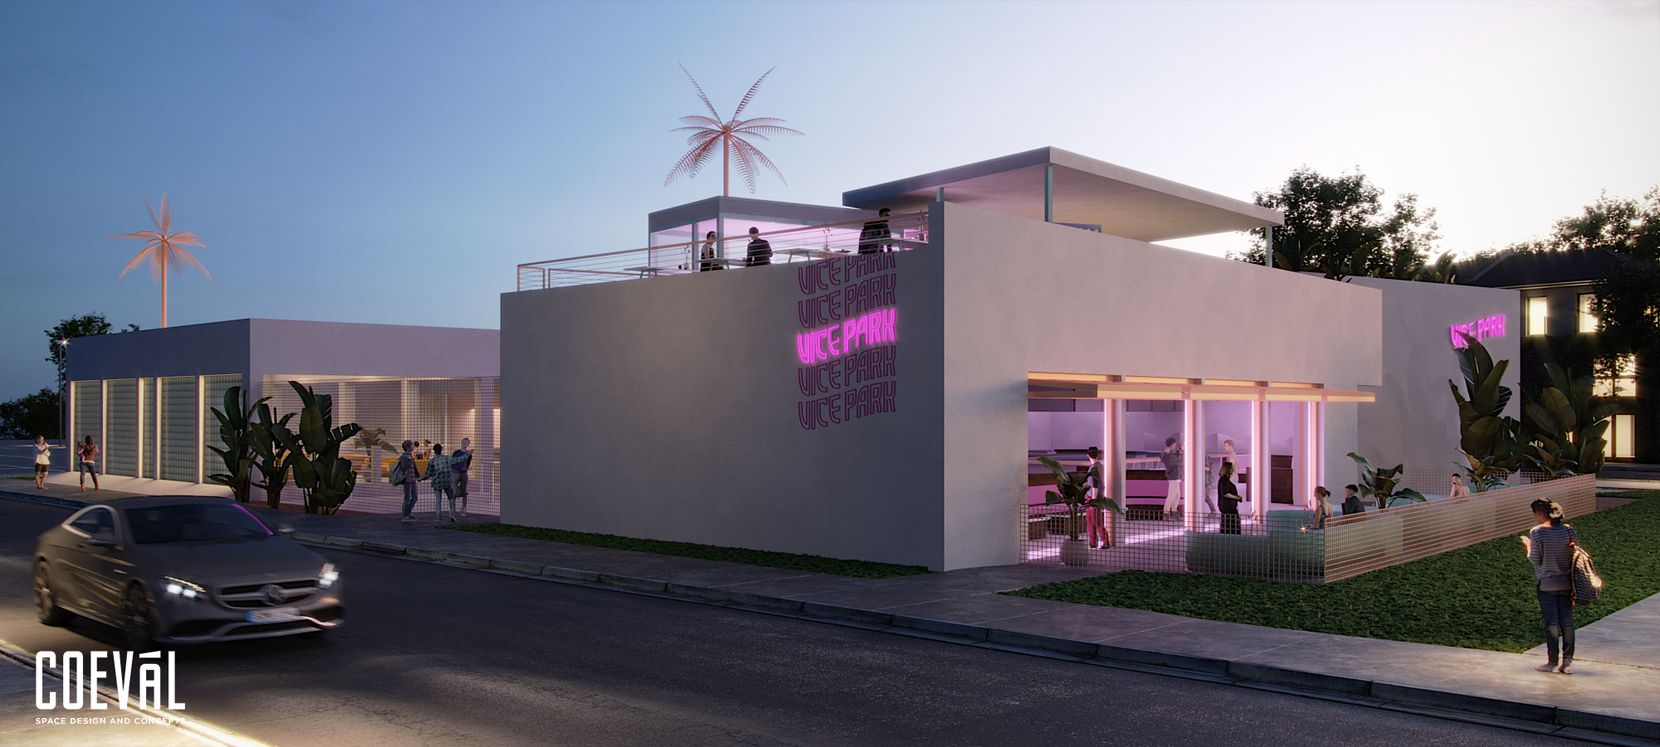 Vice Park has Miami Vice vibes. The complex is expected to open in Dallas in fall 2021.